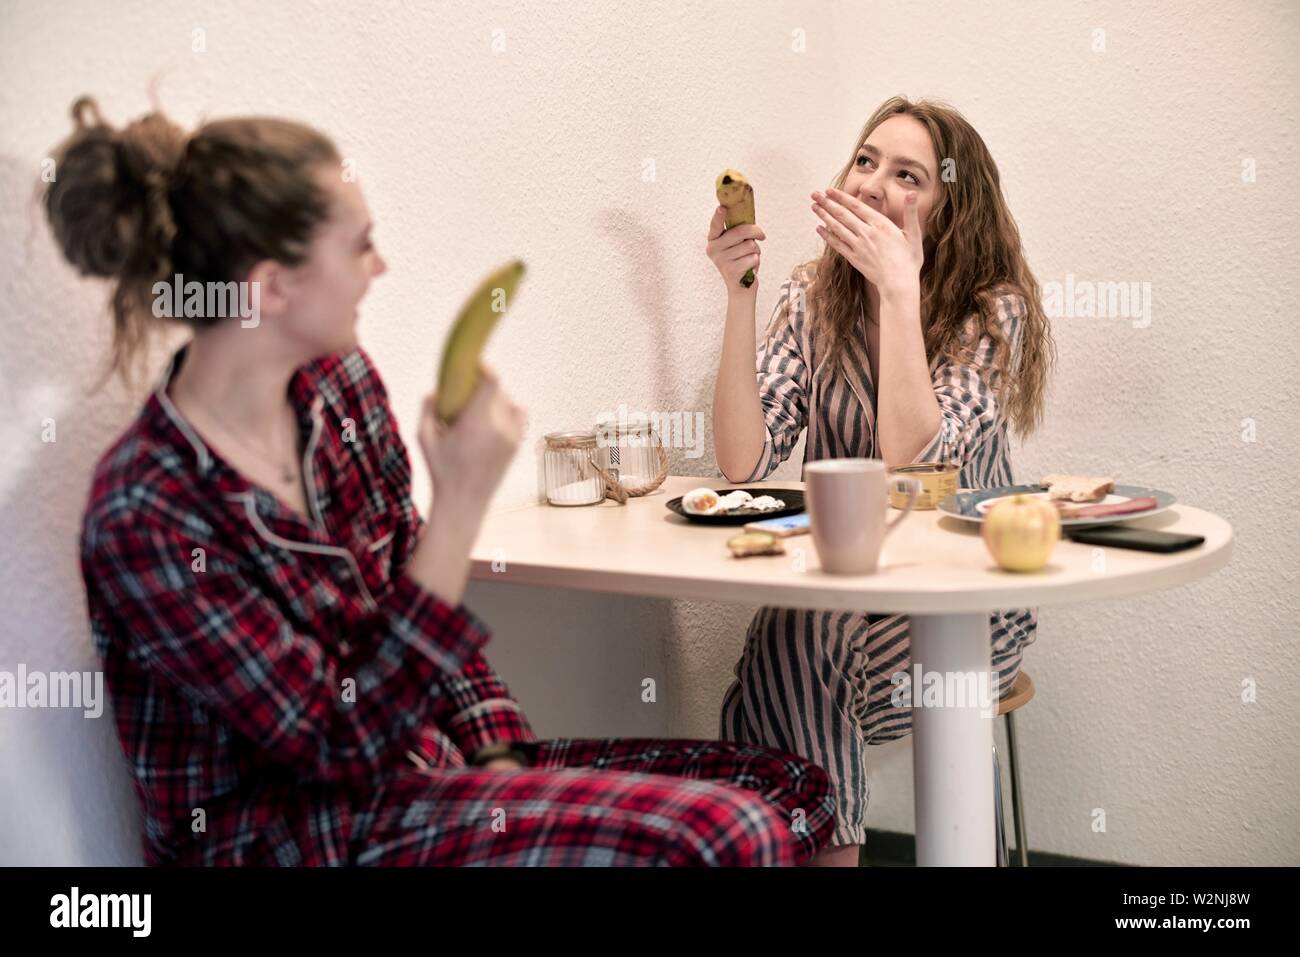 young women in pyjamas sitting at breakfast table in shared student flat, holding healthy bananas - Stock Image